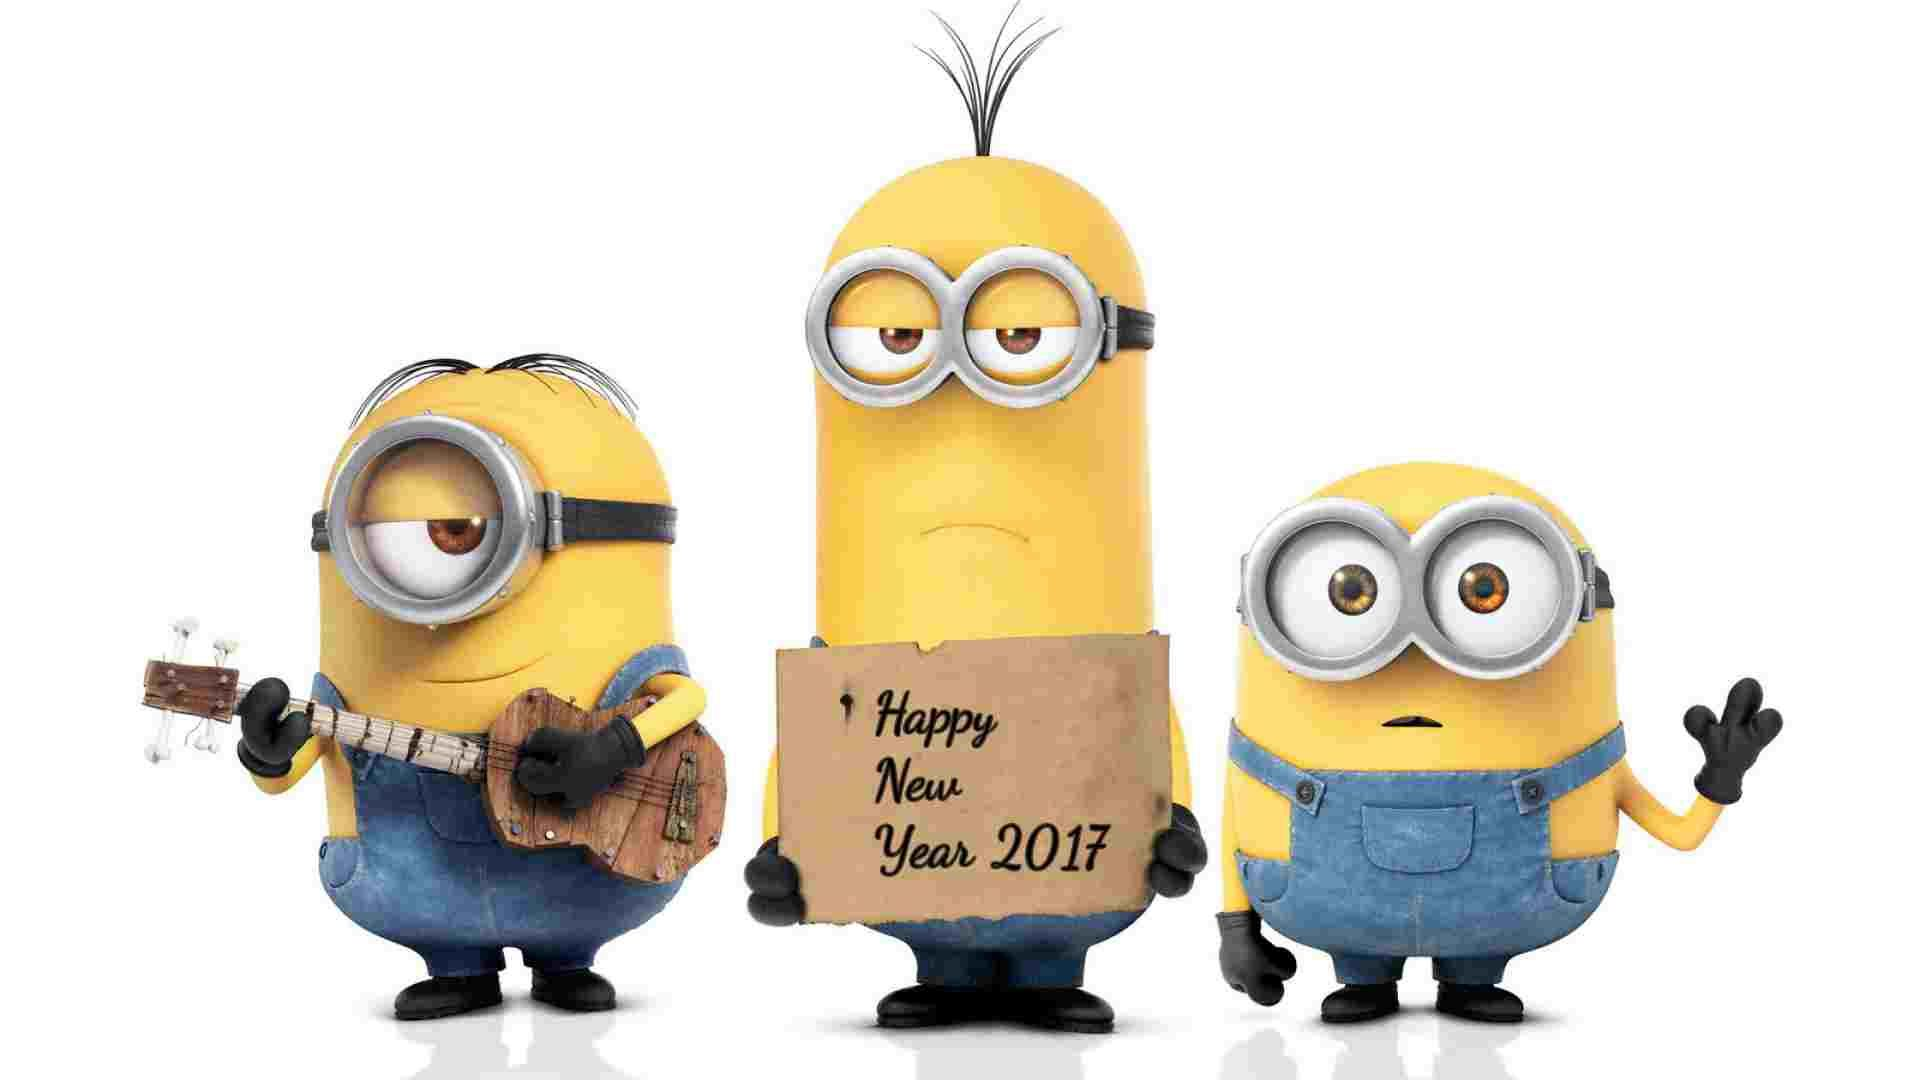 New Year Images 2017 · Funny MinionMinions BobMinions ImagesMinions  Despicable MeMinions QuotesMinion ...